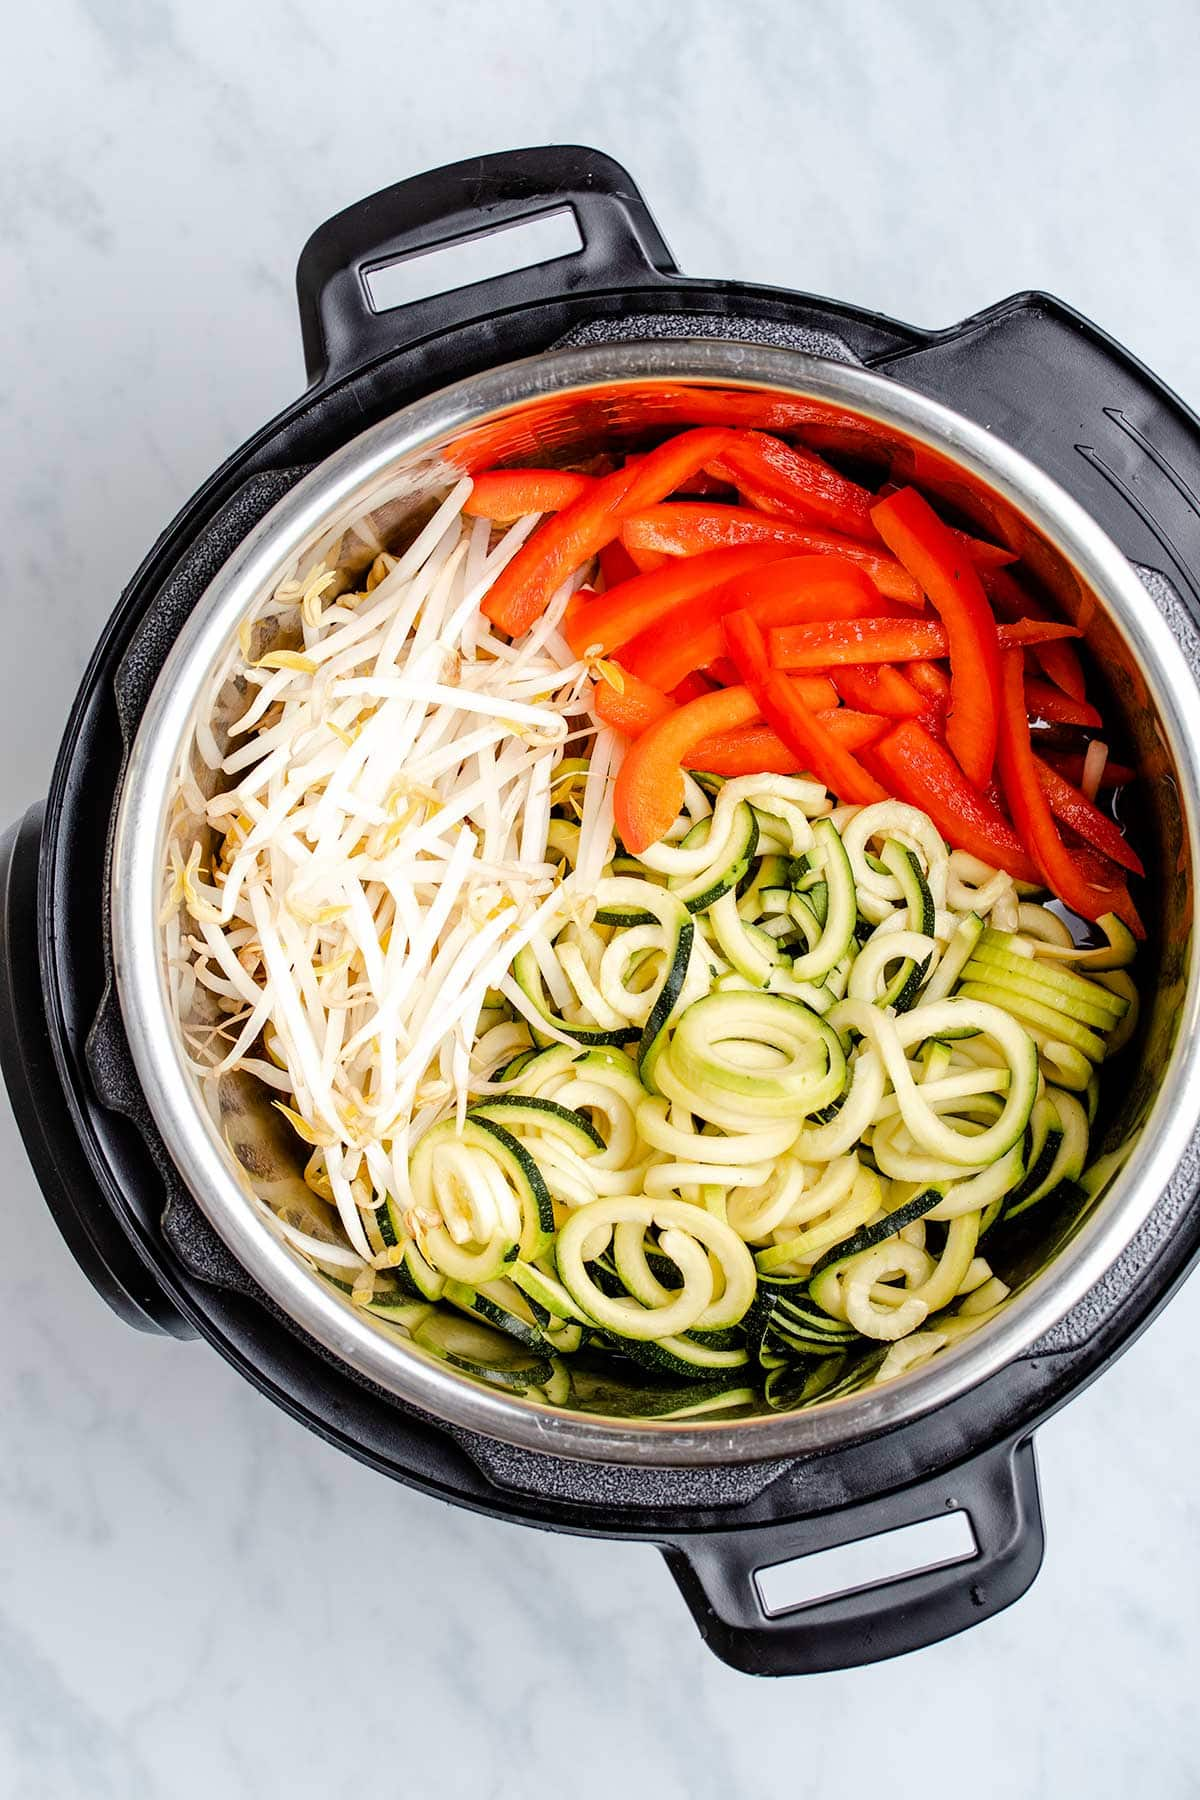 sliced red bell pepper, bean sprouts and spiralized zucchini in an Instant Pot viewed from overhead